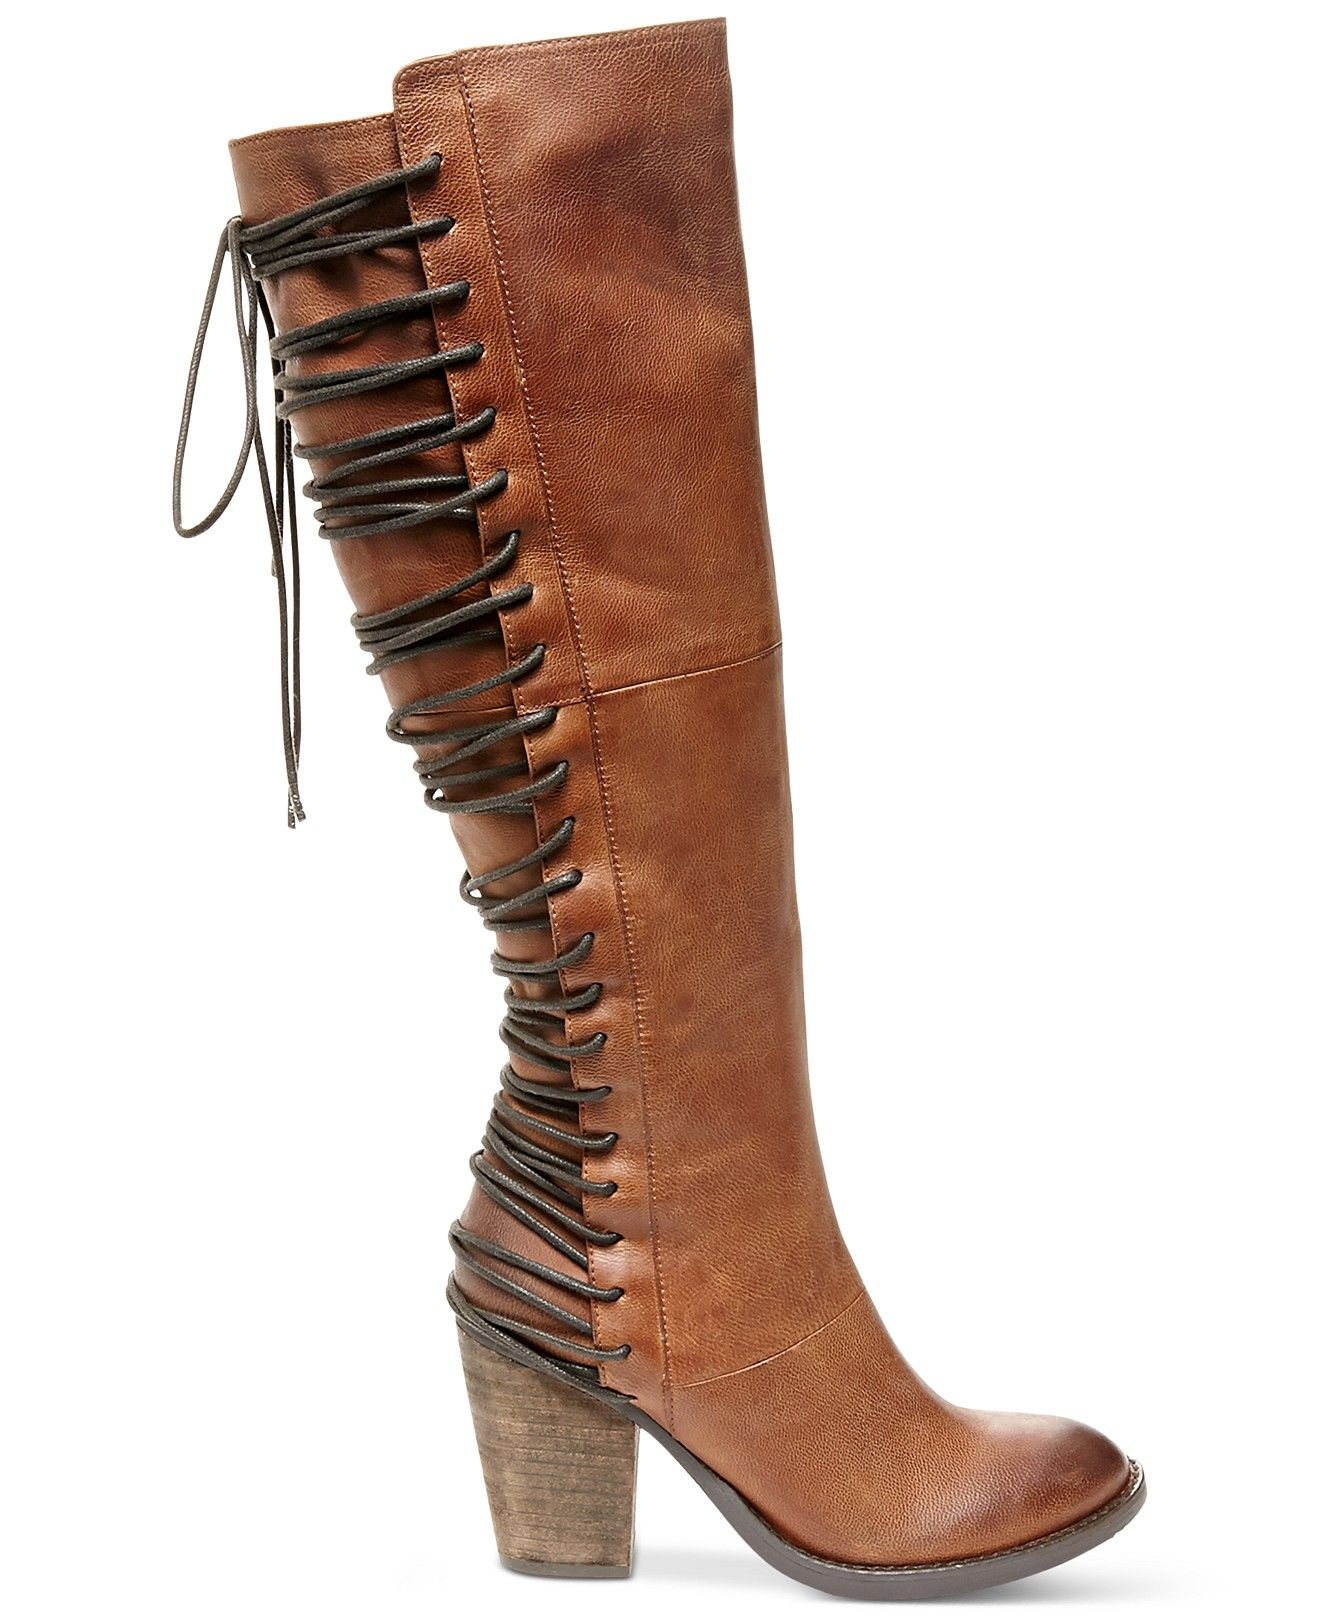 c8279ff2f70 Steve Madden Rickter Lace-Up Boots - Boots - Shoes - Macy s